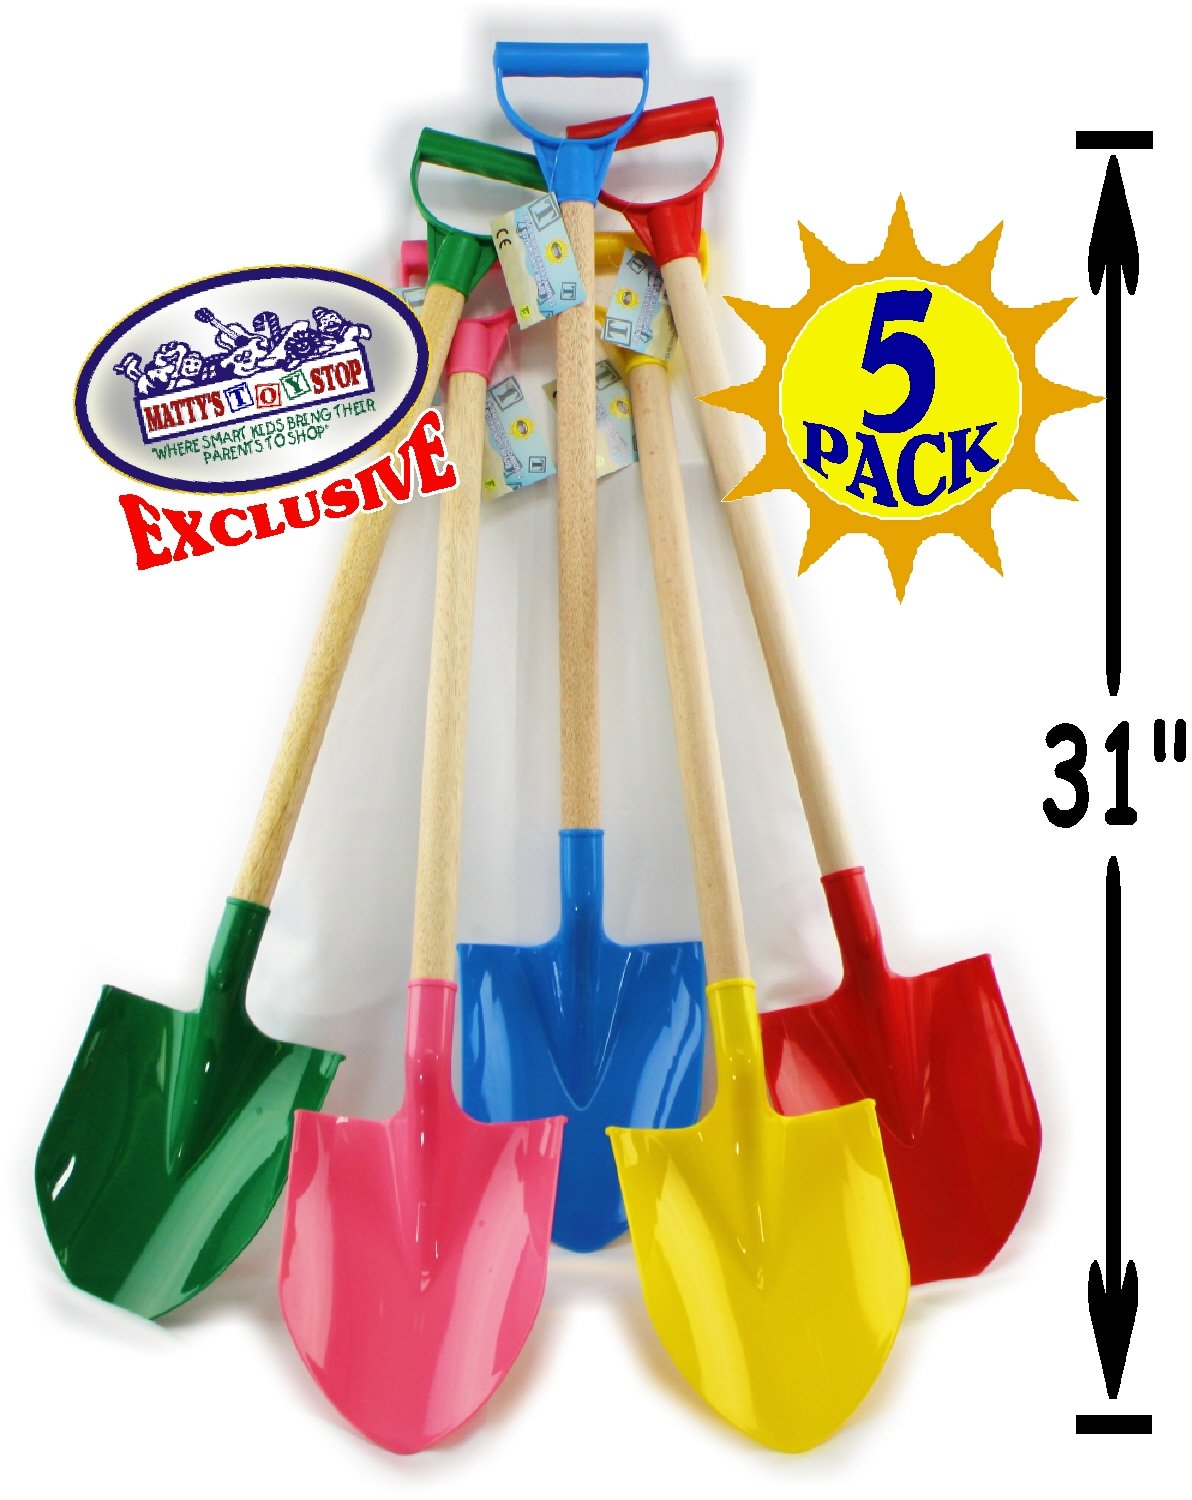 Matty's Toy Stop 31'' Heavy Duty Wooden Kids Sand Shovels with Plastic Spade & Handle (Red, Blue, Green, Yellow & Pink) Complete Gift Set Bundle - 5 Pack by Matty's Toy Stop